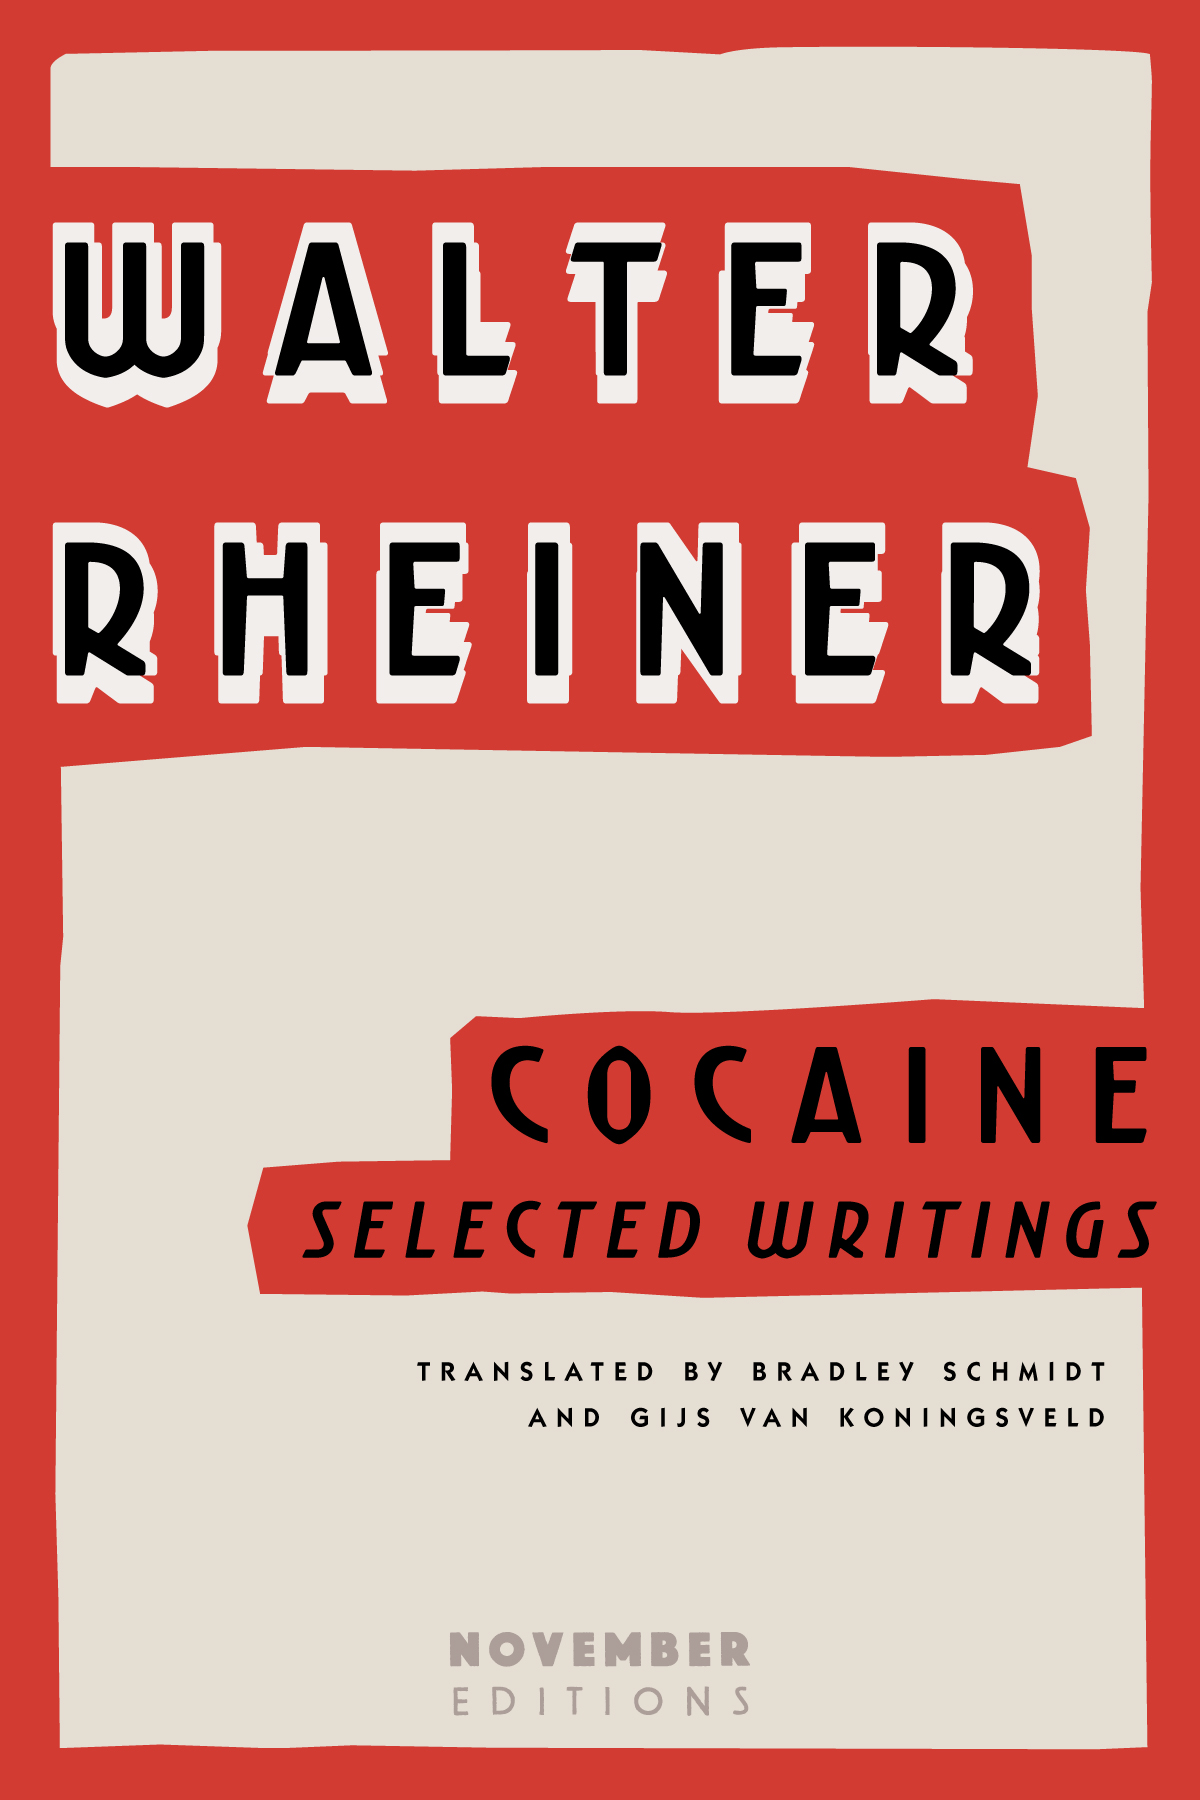 Cocaine: Selected Writings by Walter Rheiner